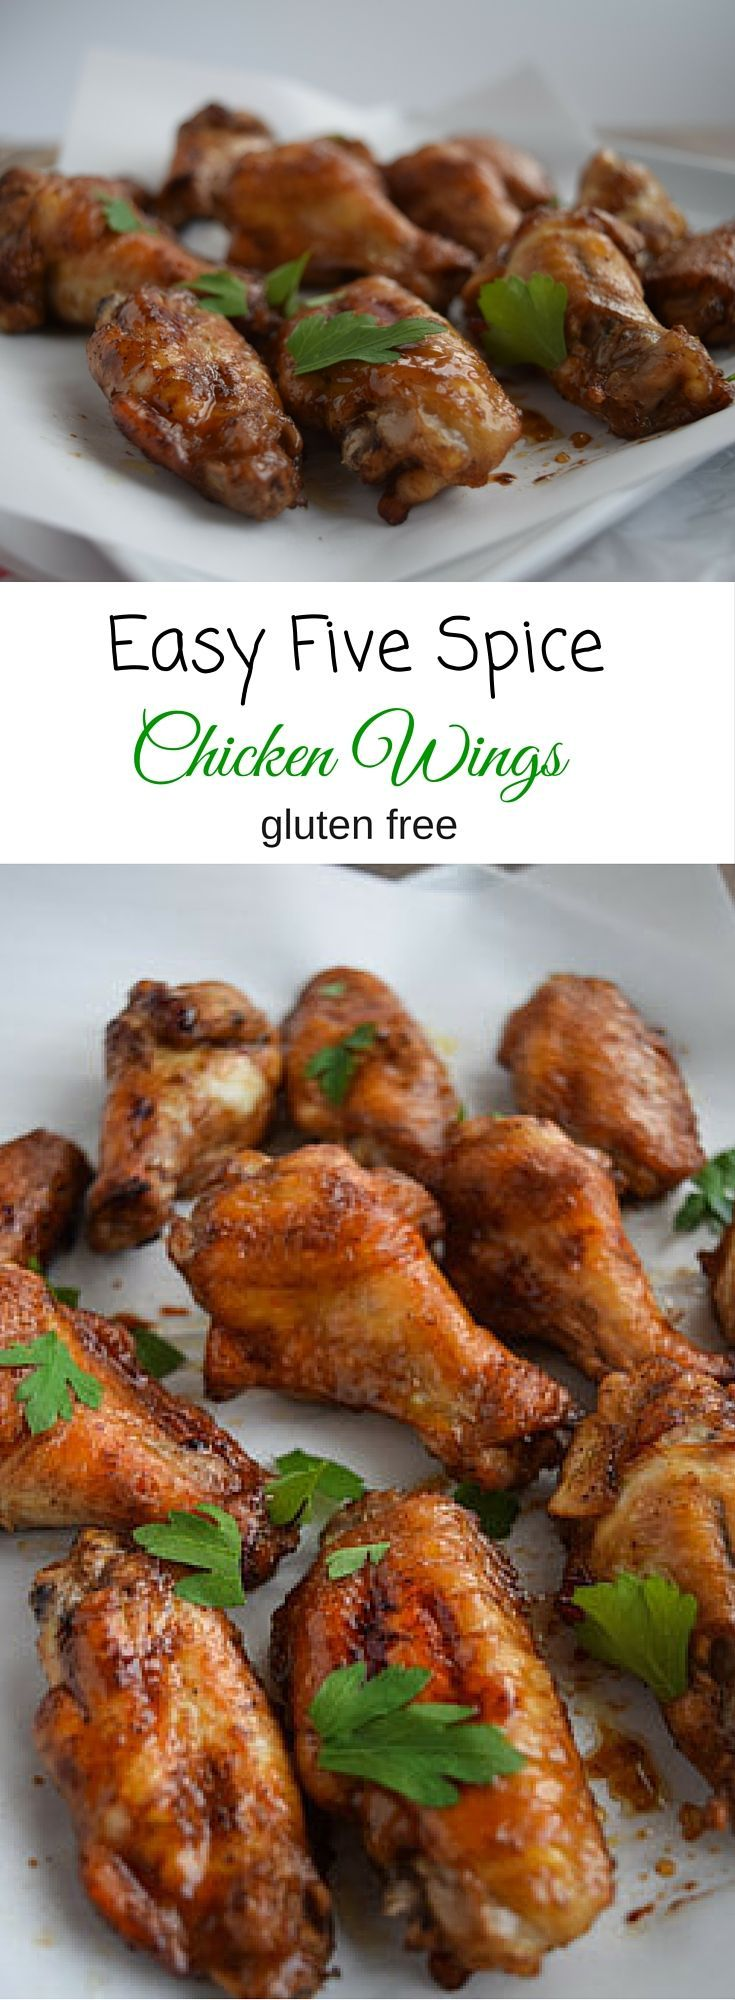 Easy Five Spice Chicken Wings - Gluten Free | Recipe ...